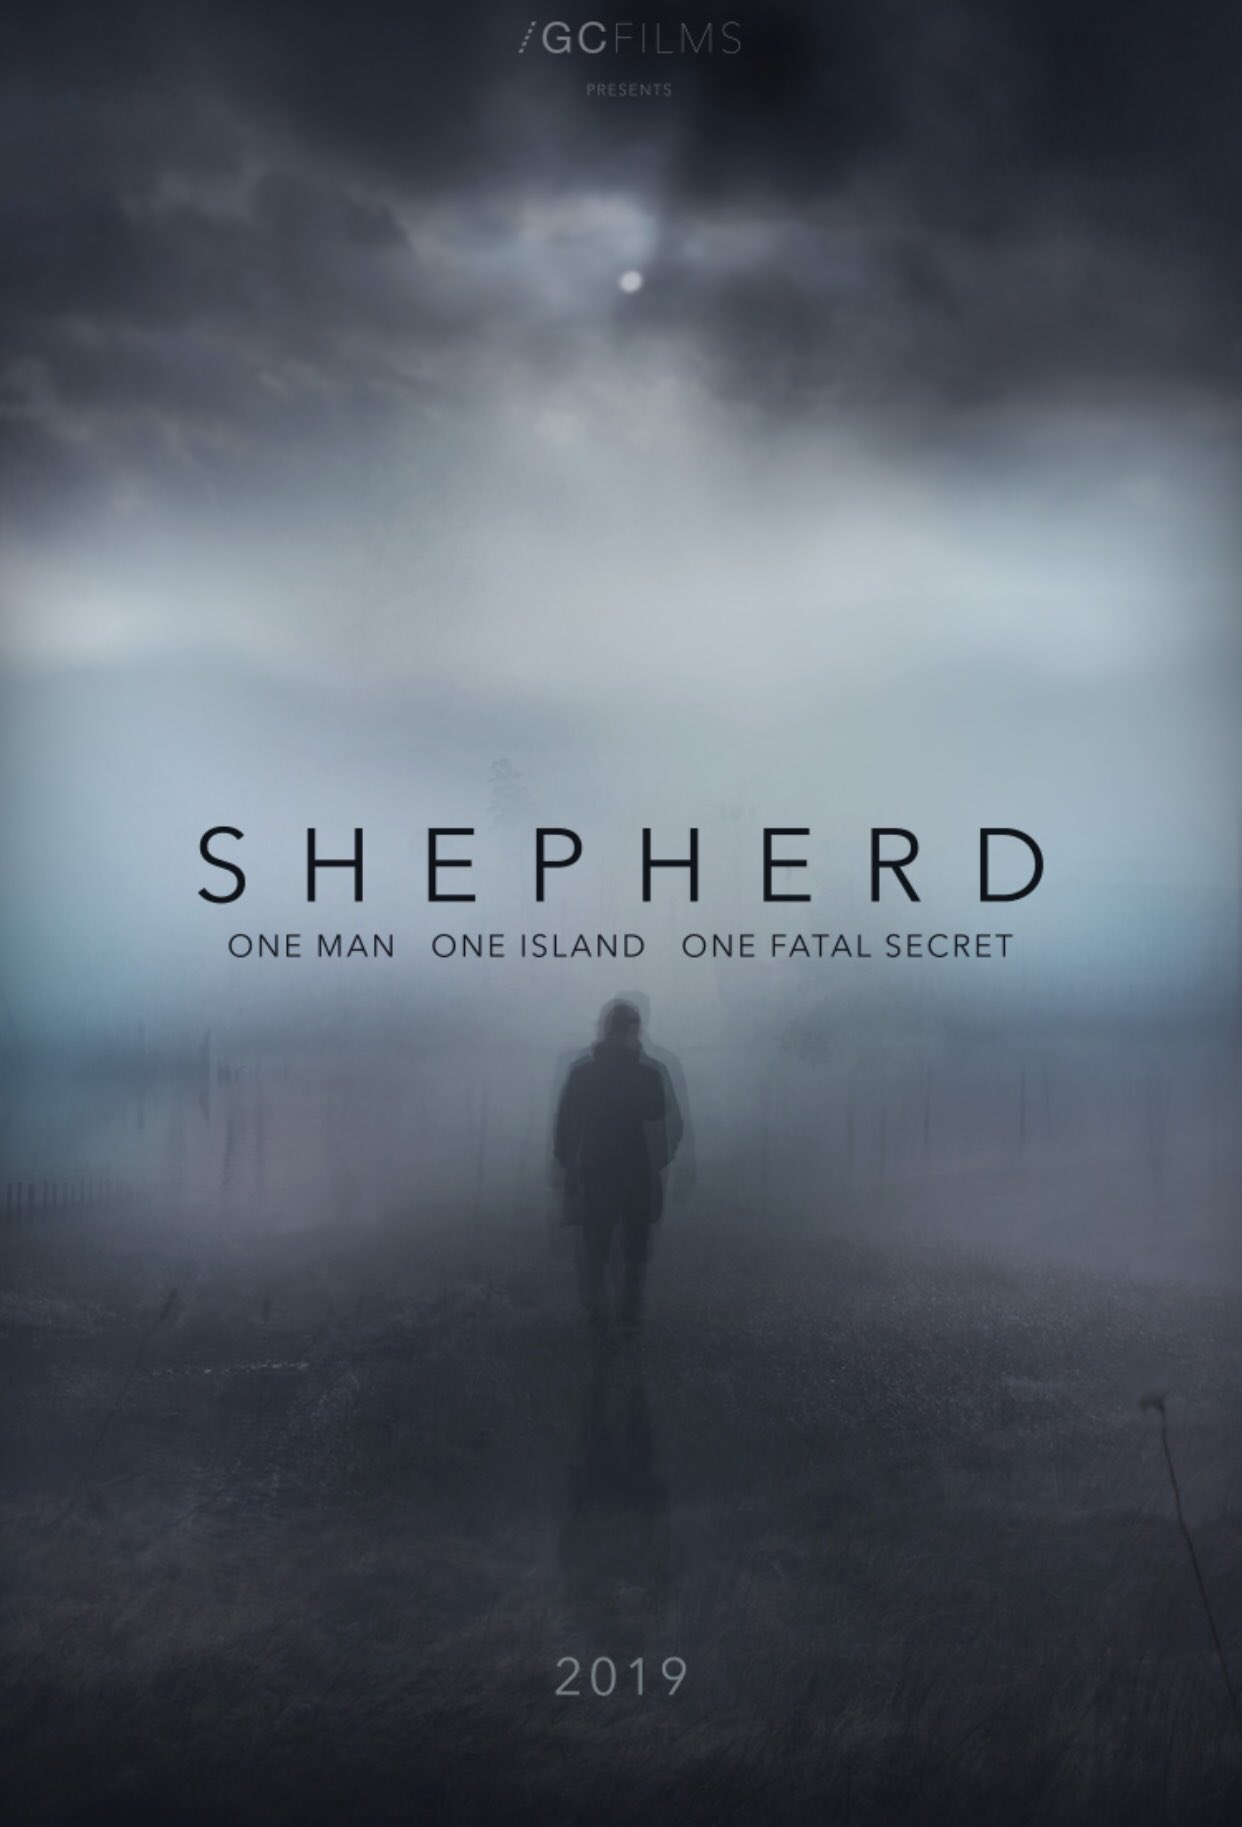 """Russell Owen on Twitter: """"As a new year is on the horizon so is pre-production on this beauty :D #film #horrorfilm #writerdirector #shepherd #comingsoon… https://t.co/rGruGafepw"""""""